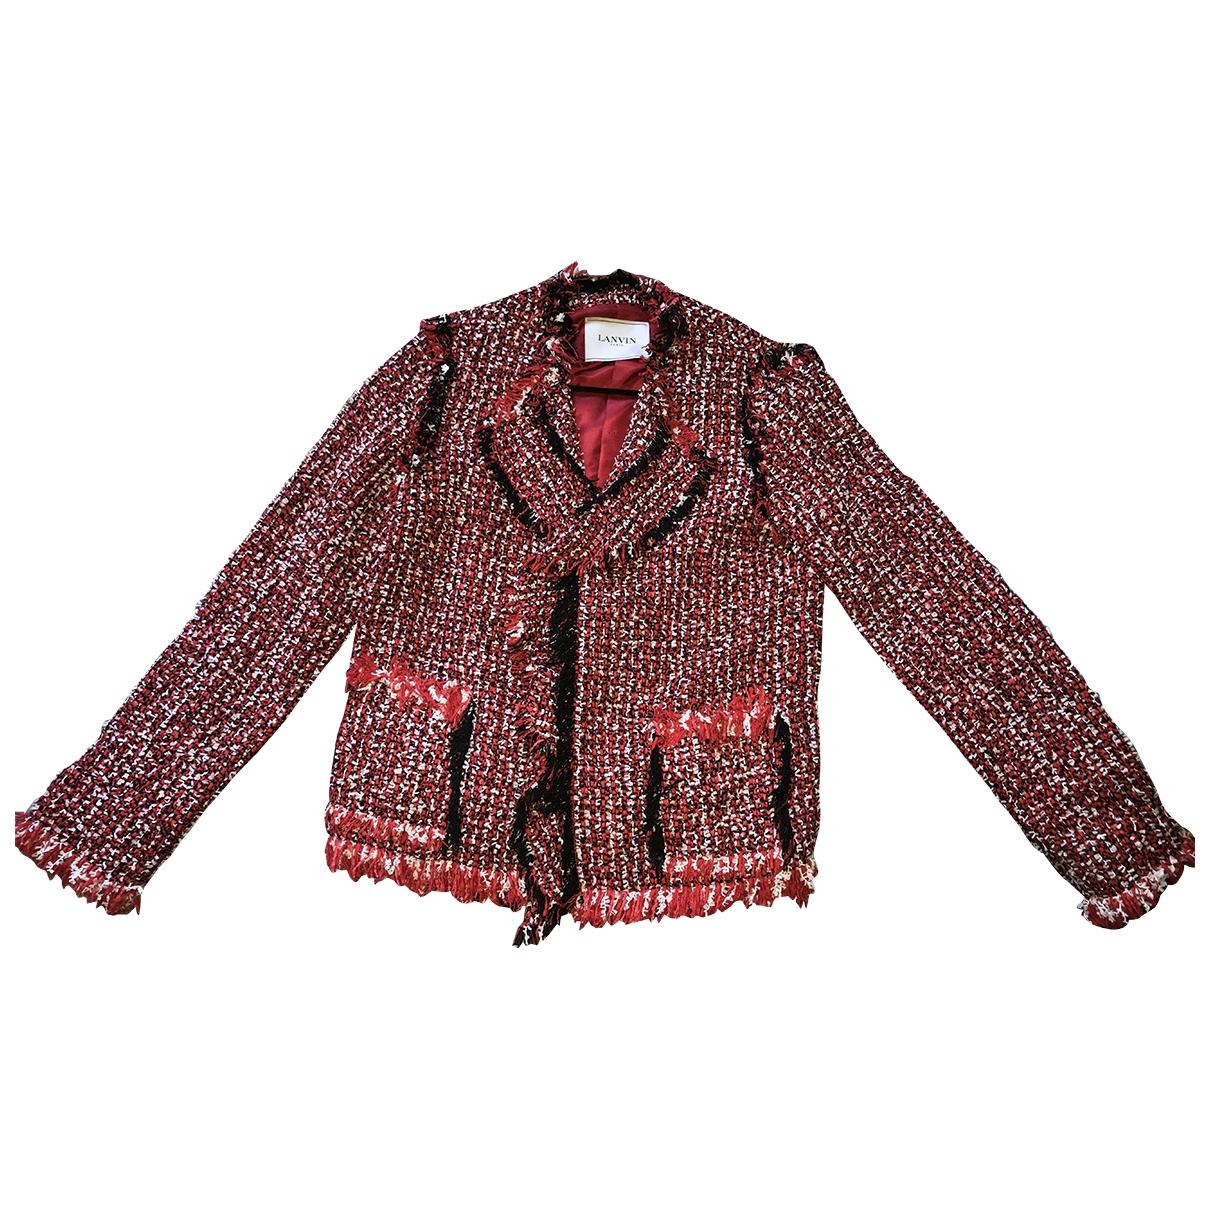 Lanvin \N Red Cotton jacket for Women 38 FR